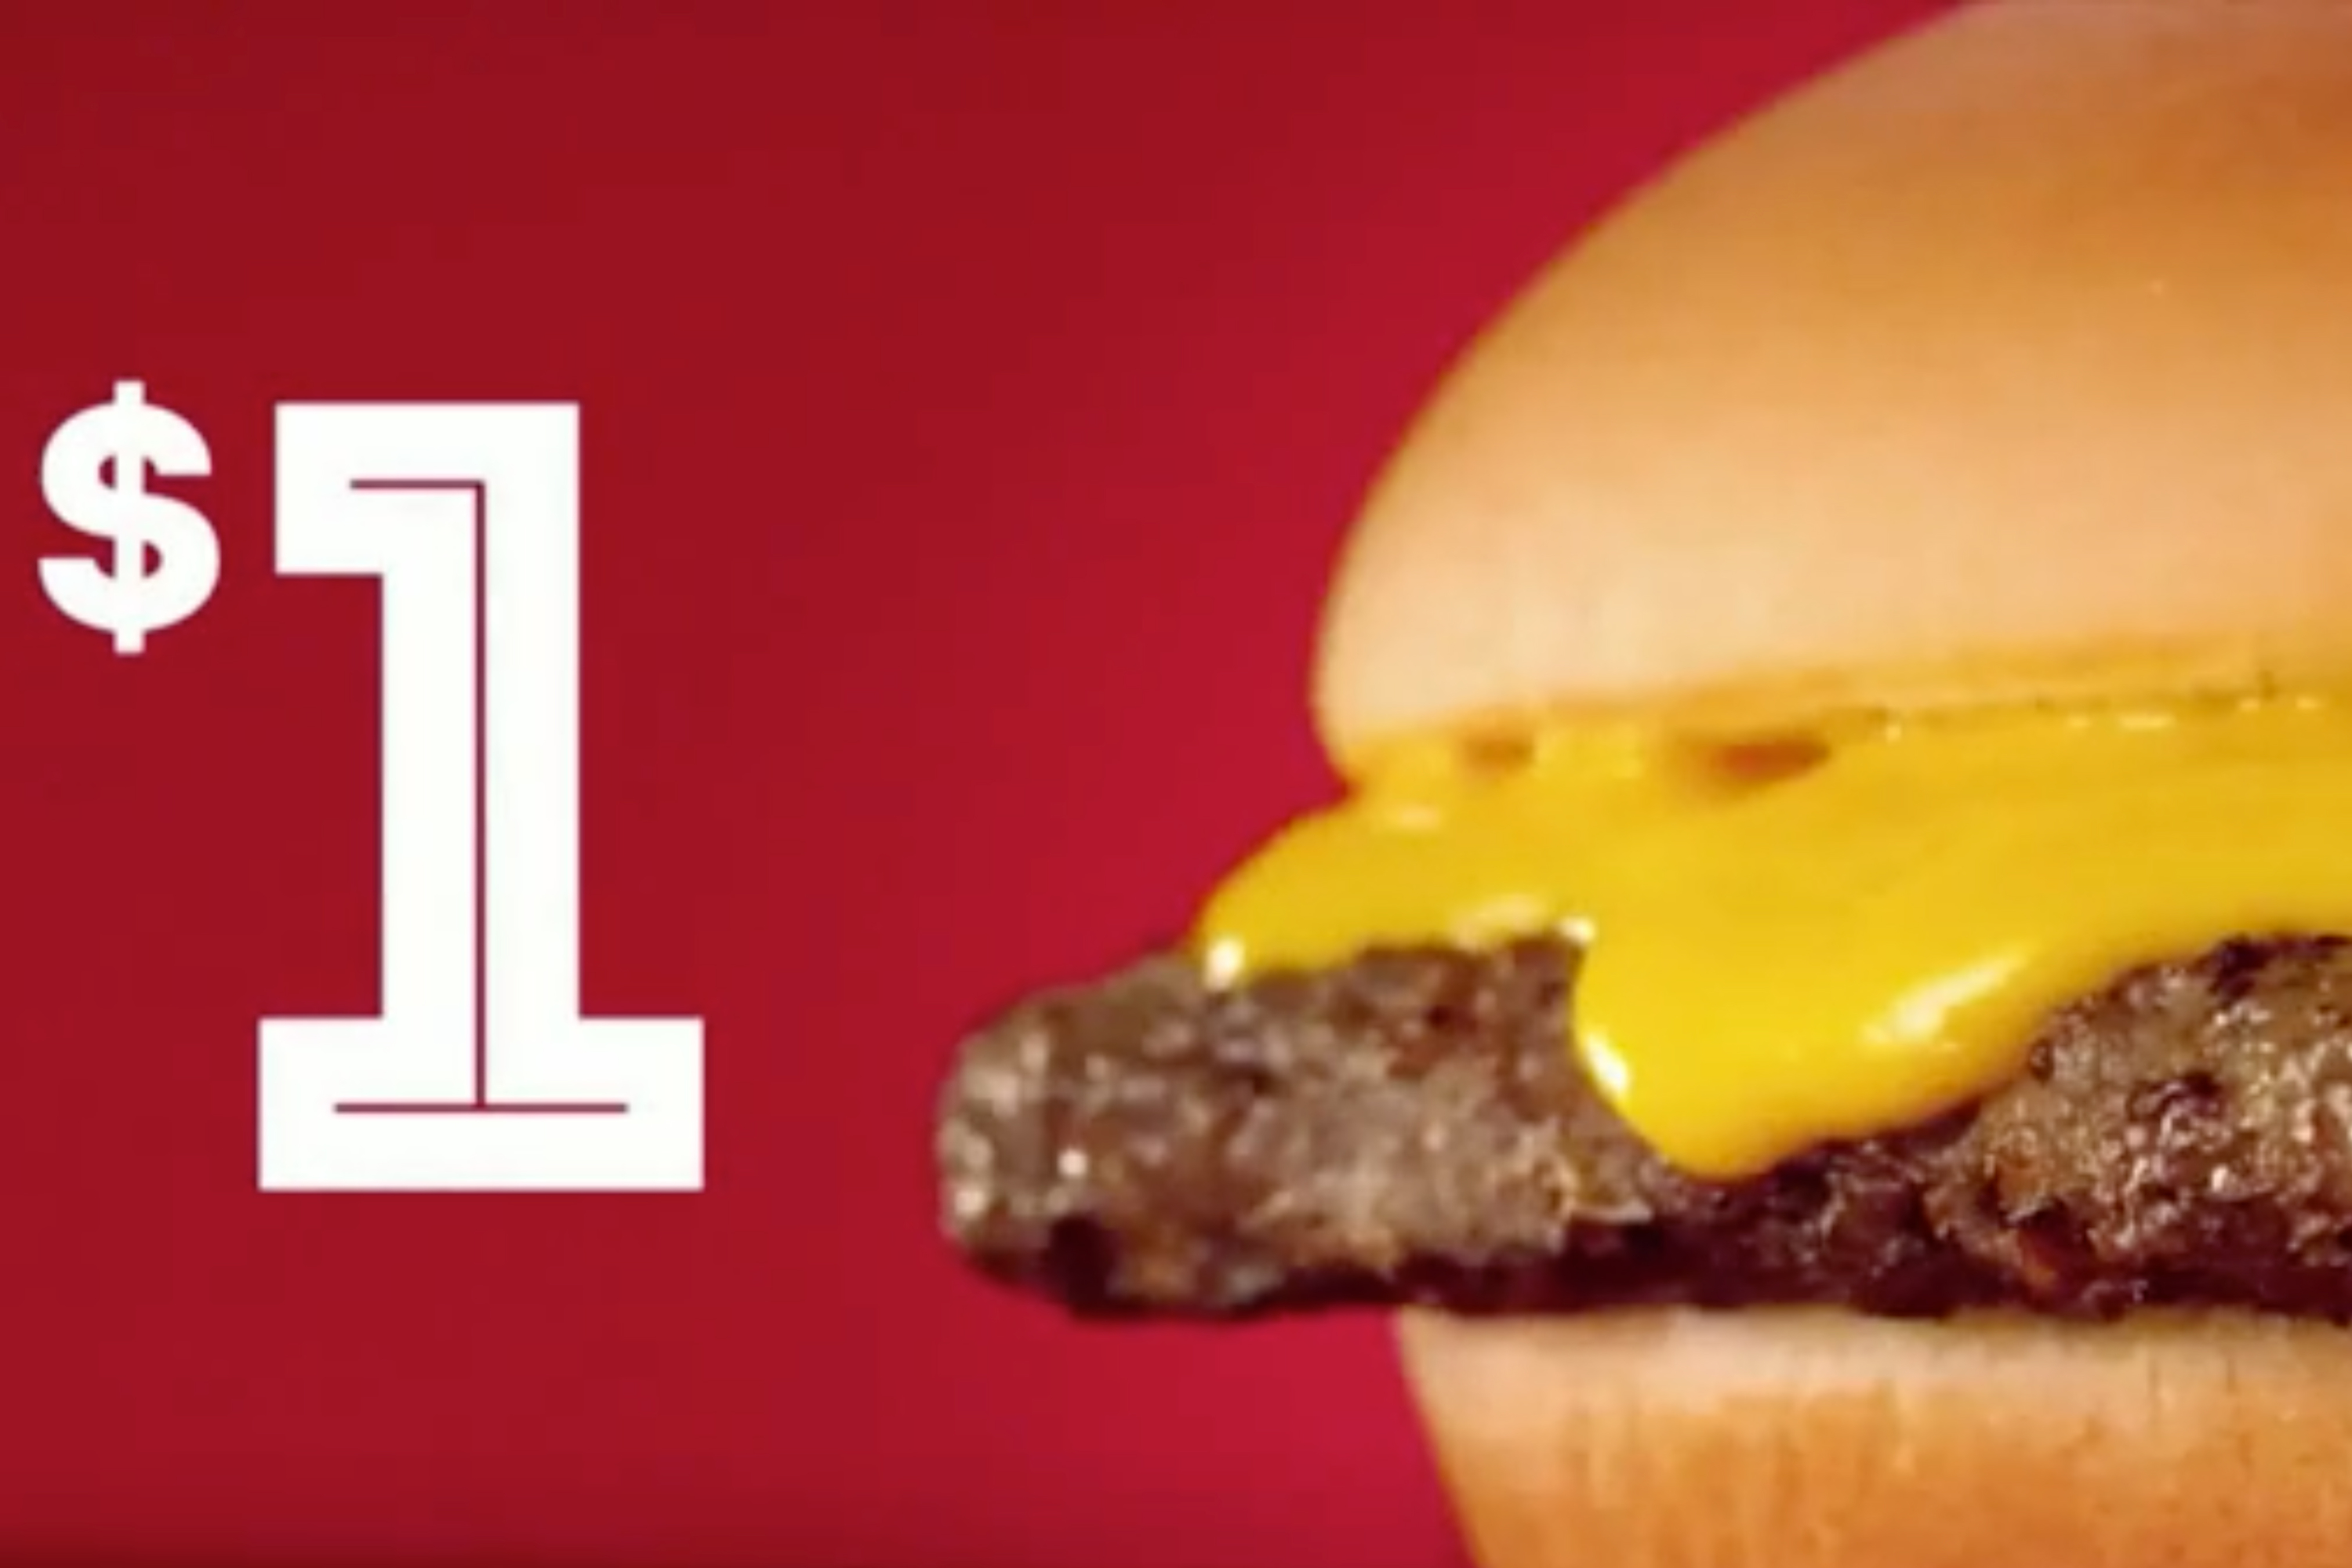 Watch the newest commercials on TV from Wendy's, Boxed, Macy's and more